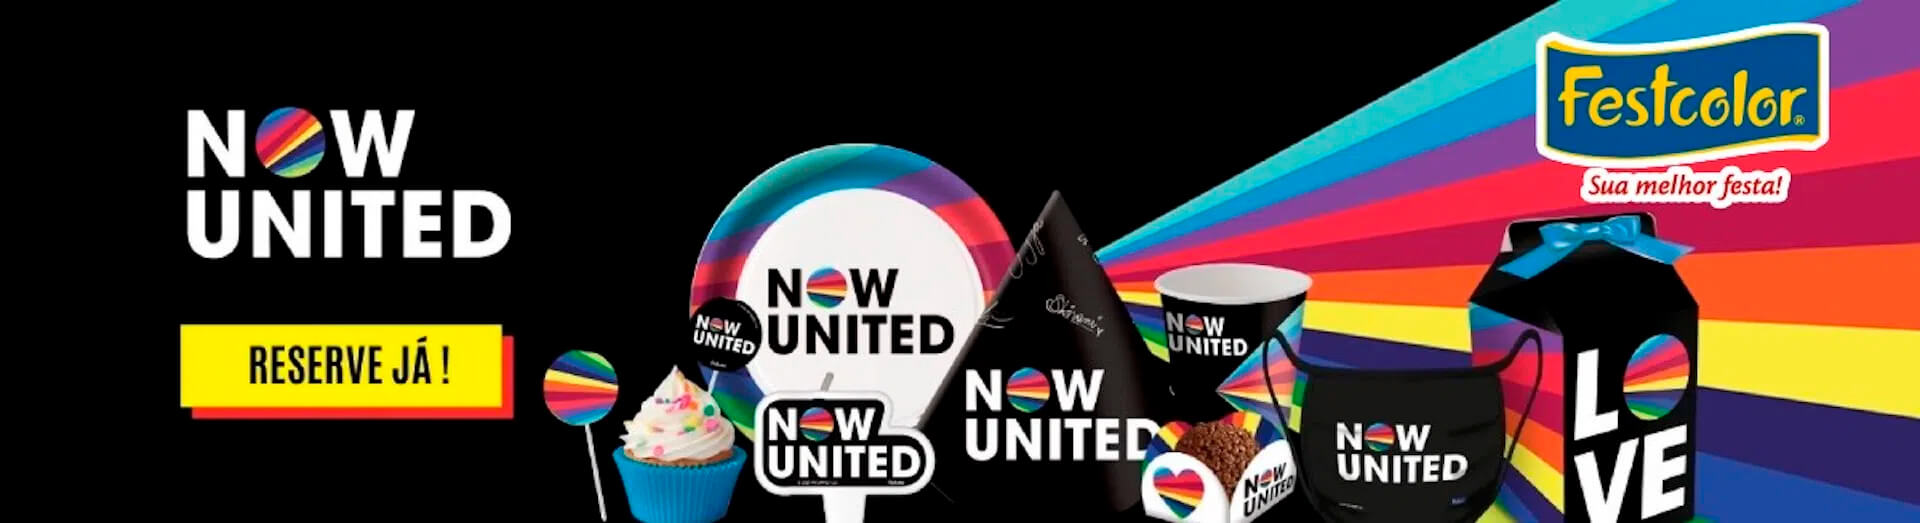 BannerSlider-Now United